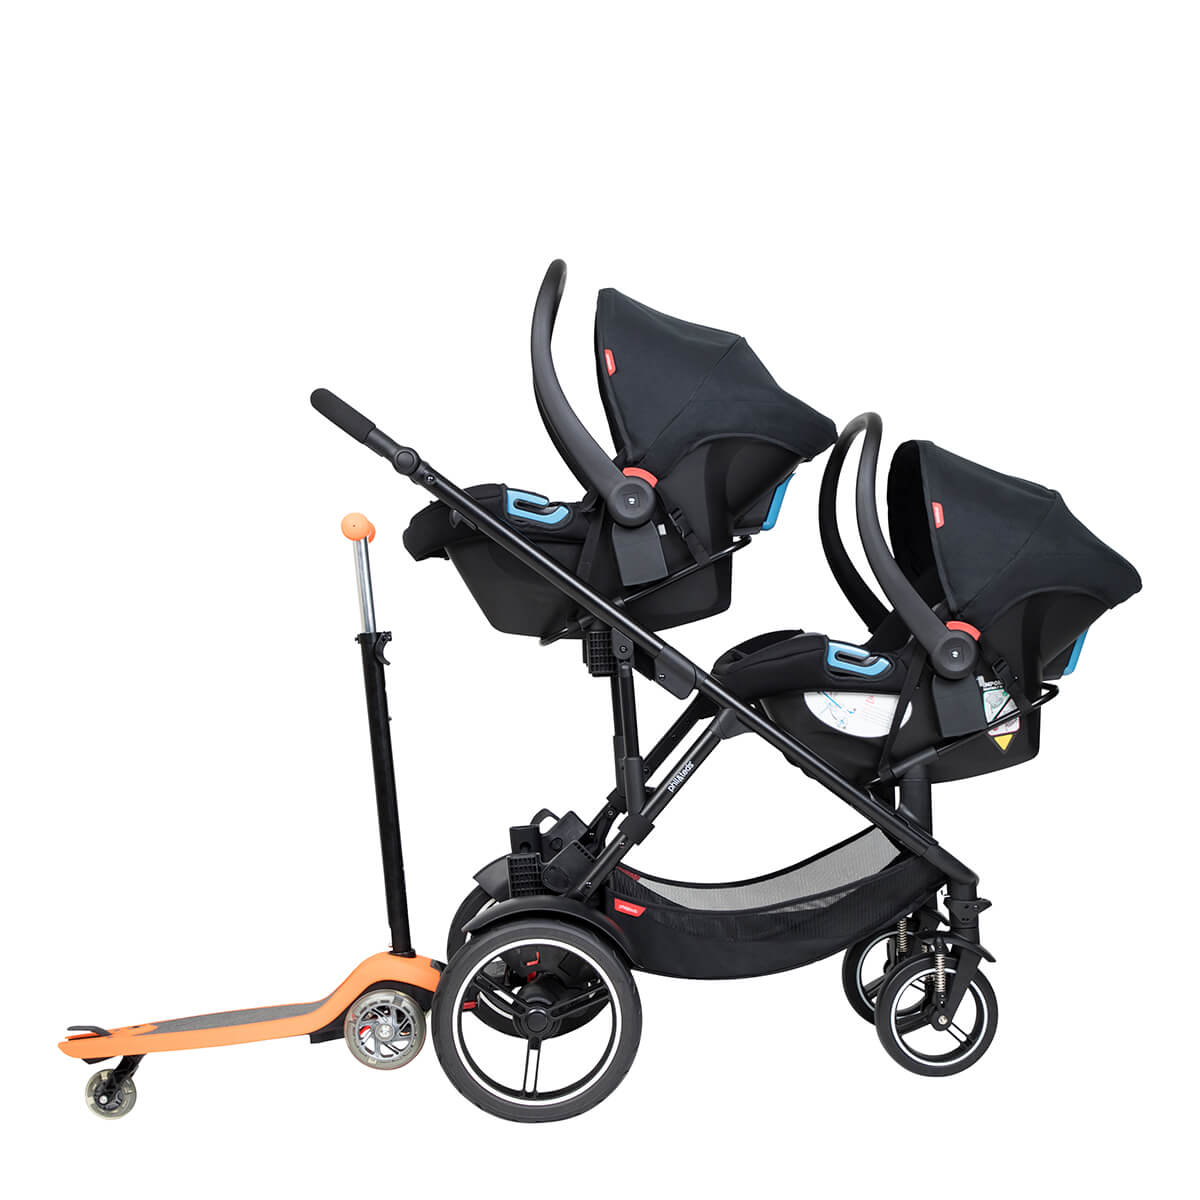 https://cdn.accentuate.io/4546158887017/19119639625833/philteds-voyager-buggy-with-double-travel-systems-and-freerider-stroller-board-in-the-rear-v1625778493822.jpg?1200x1200